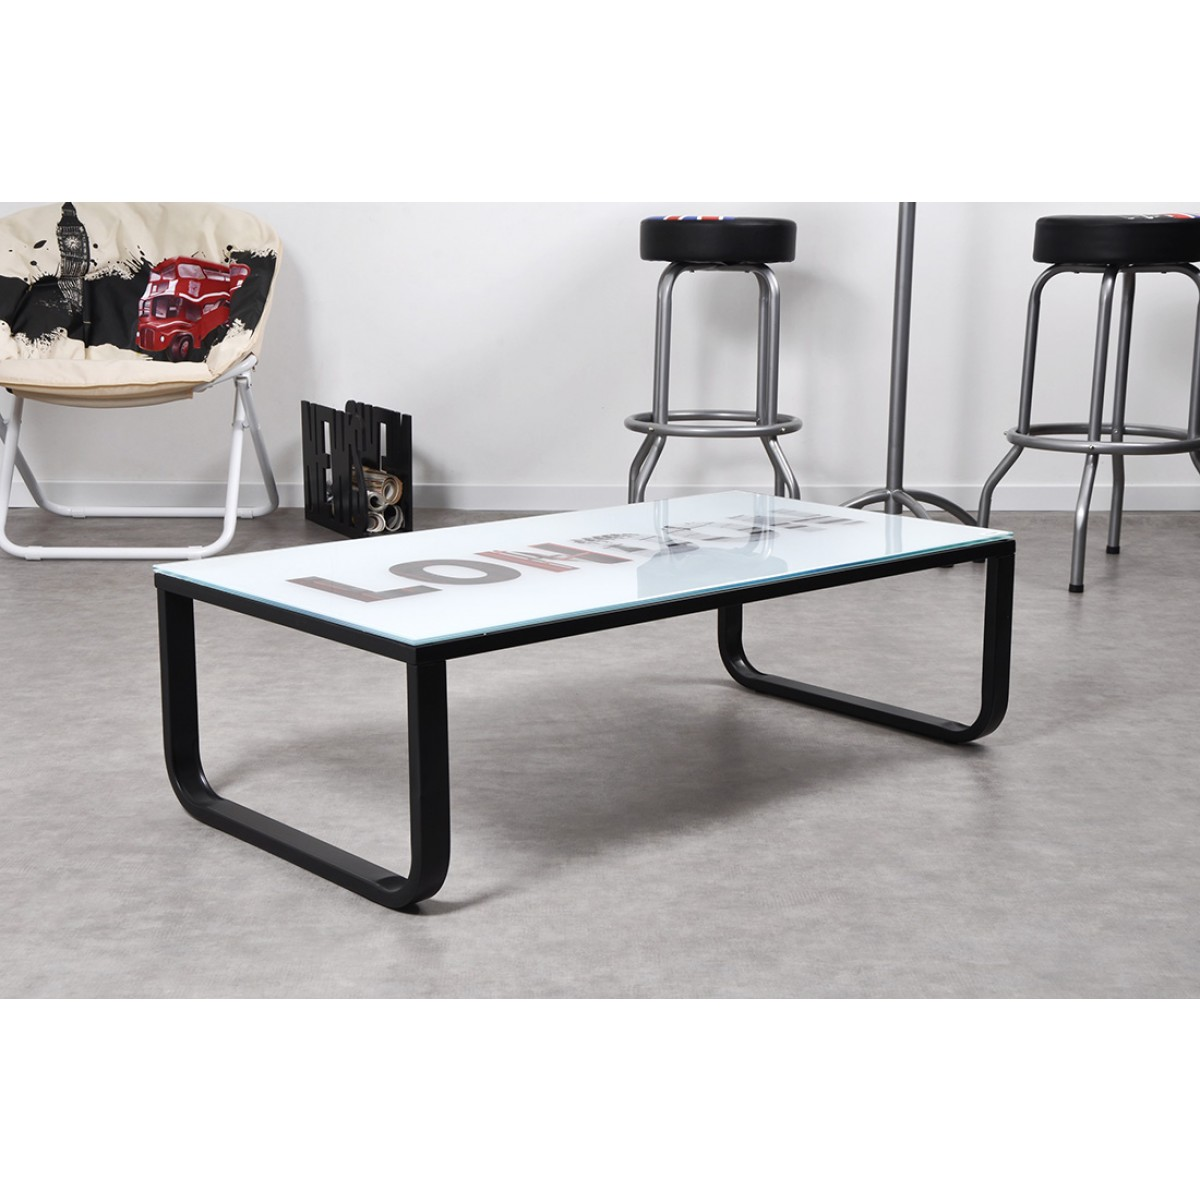 Table basse en verre london